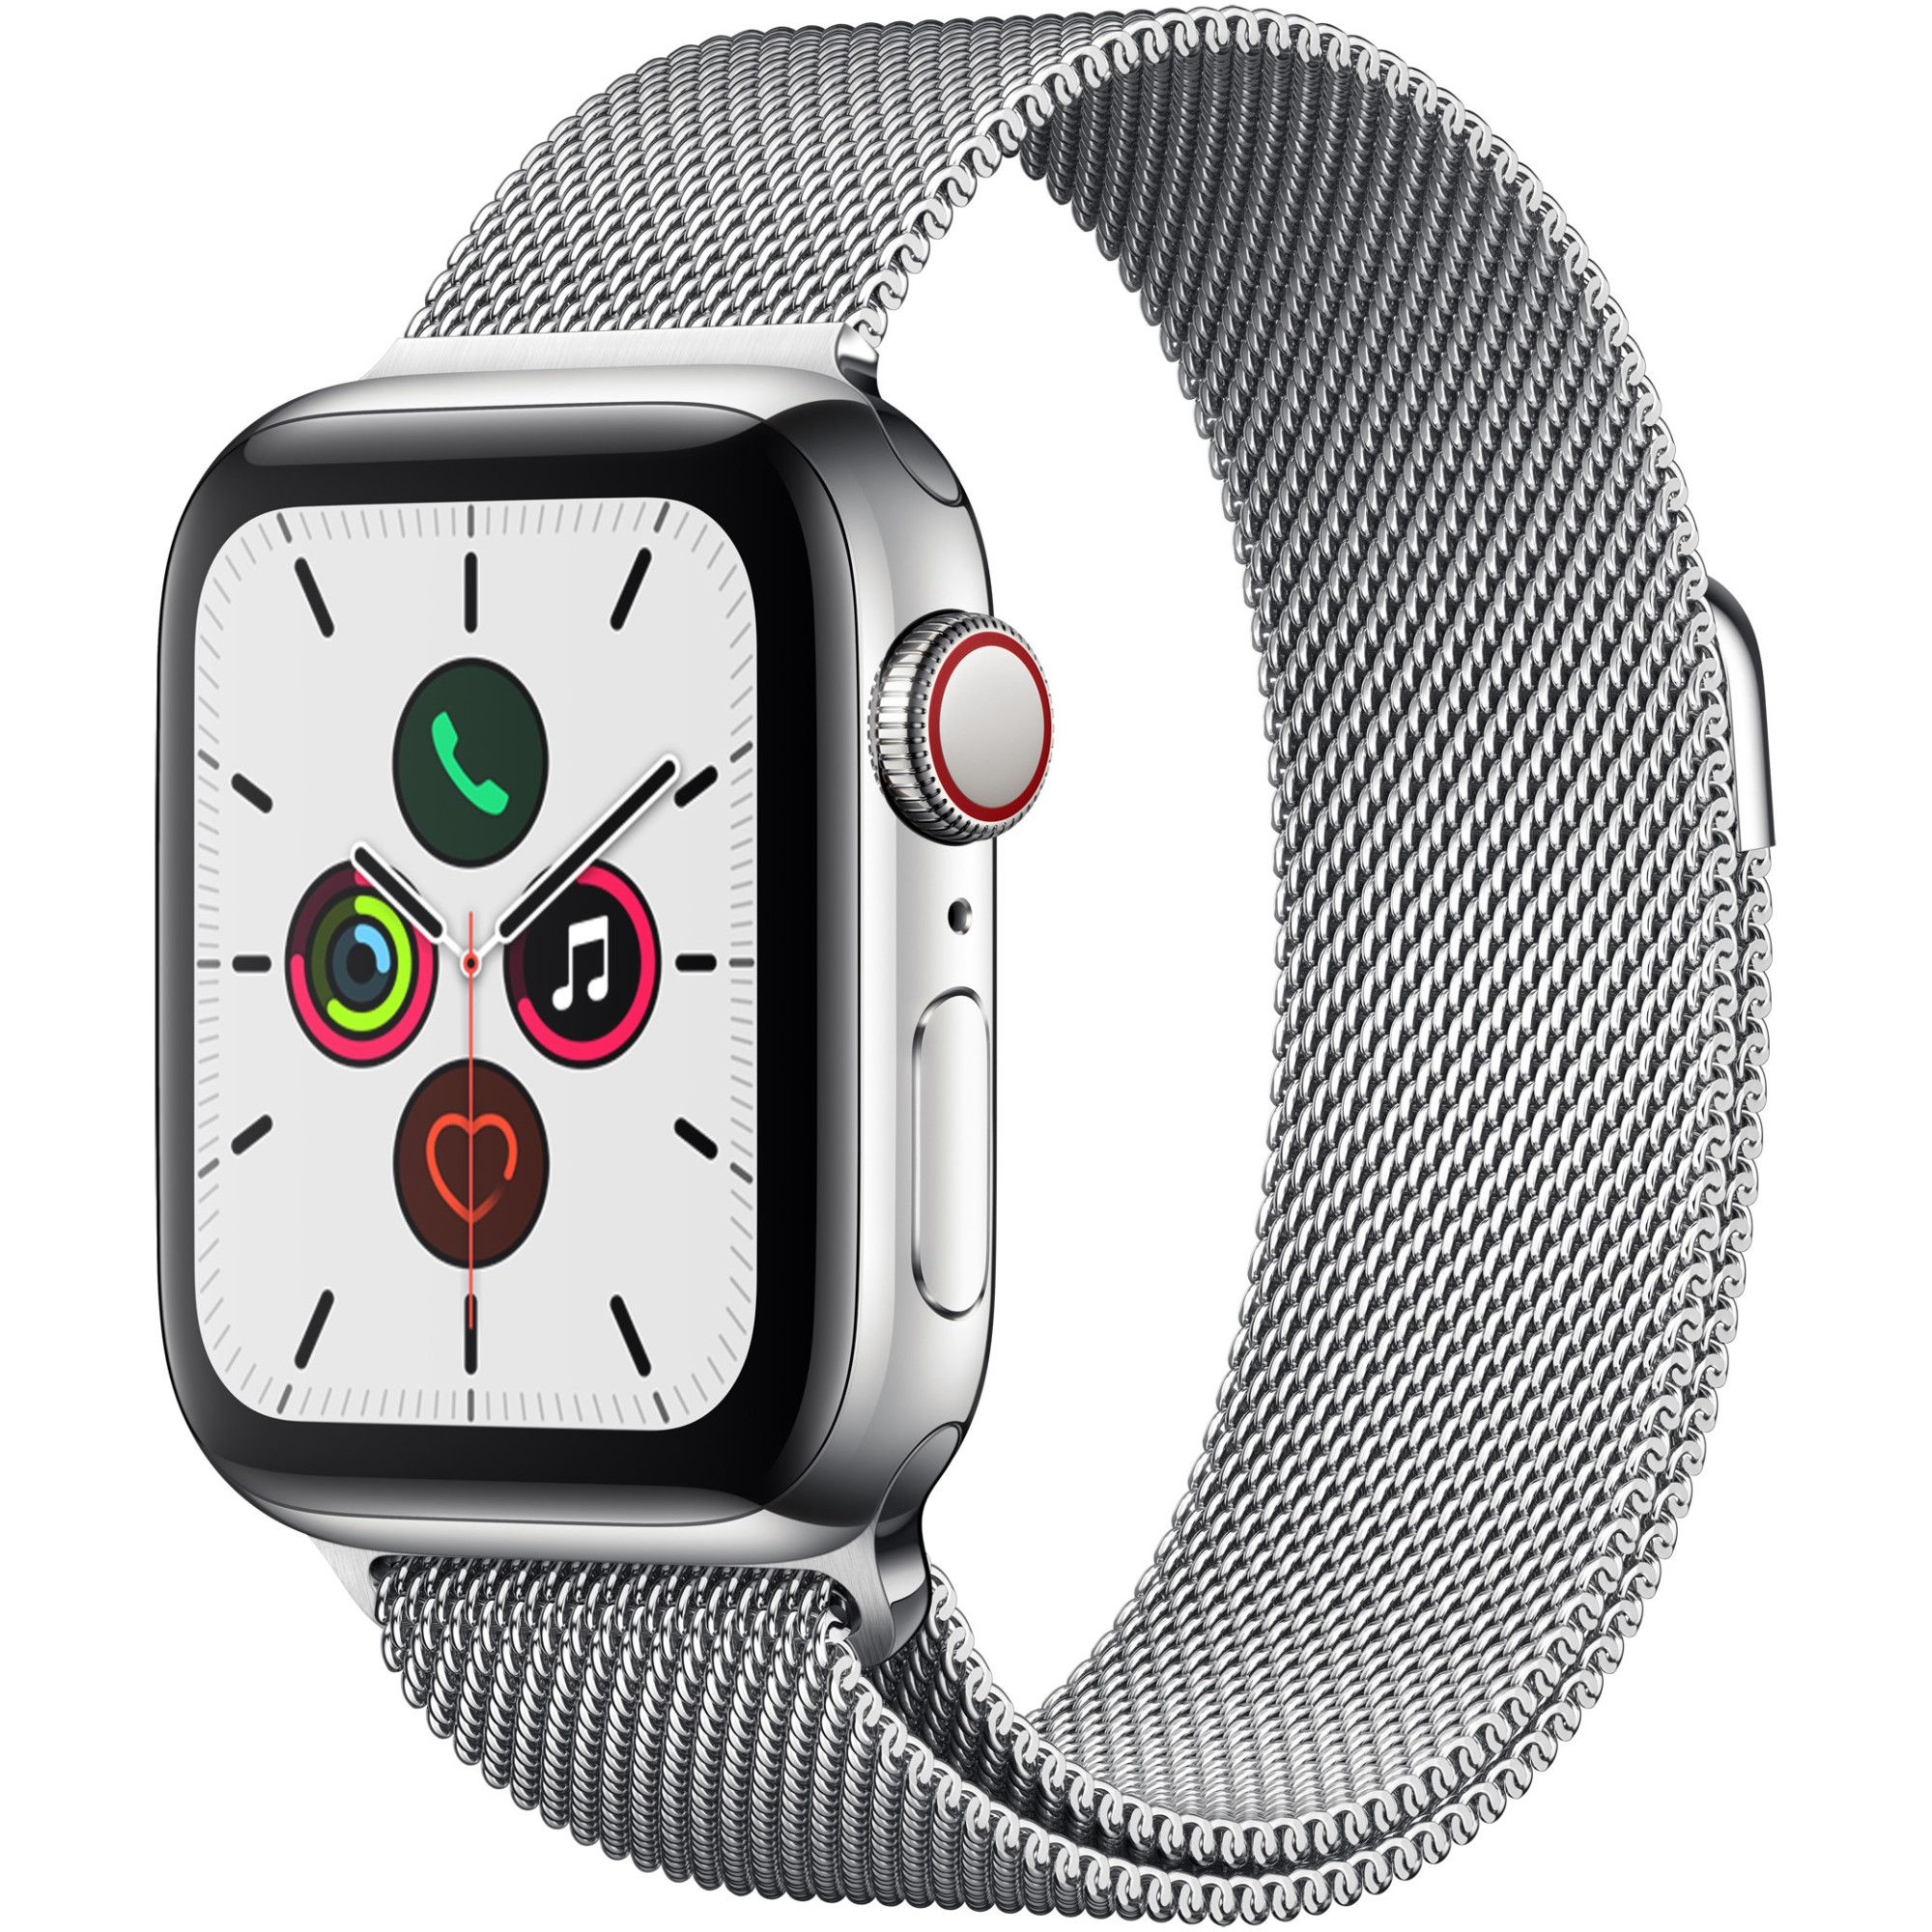 Smartwatch Apple Watch Series 5 GPS + Cellular 40mm 4G Carcasa Stainless Steel Bratara Stainless Steel Milanese